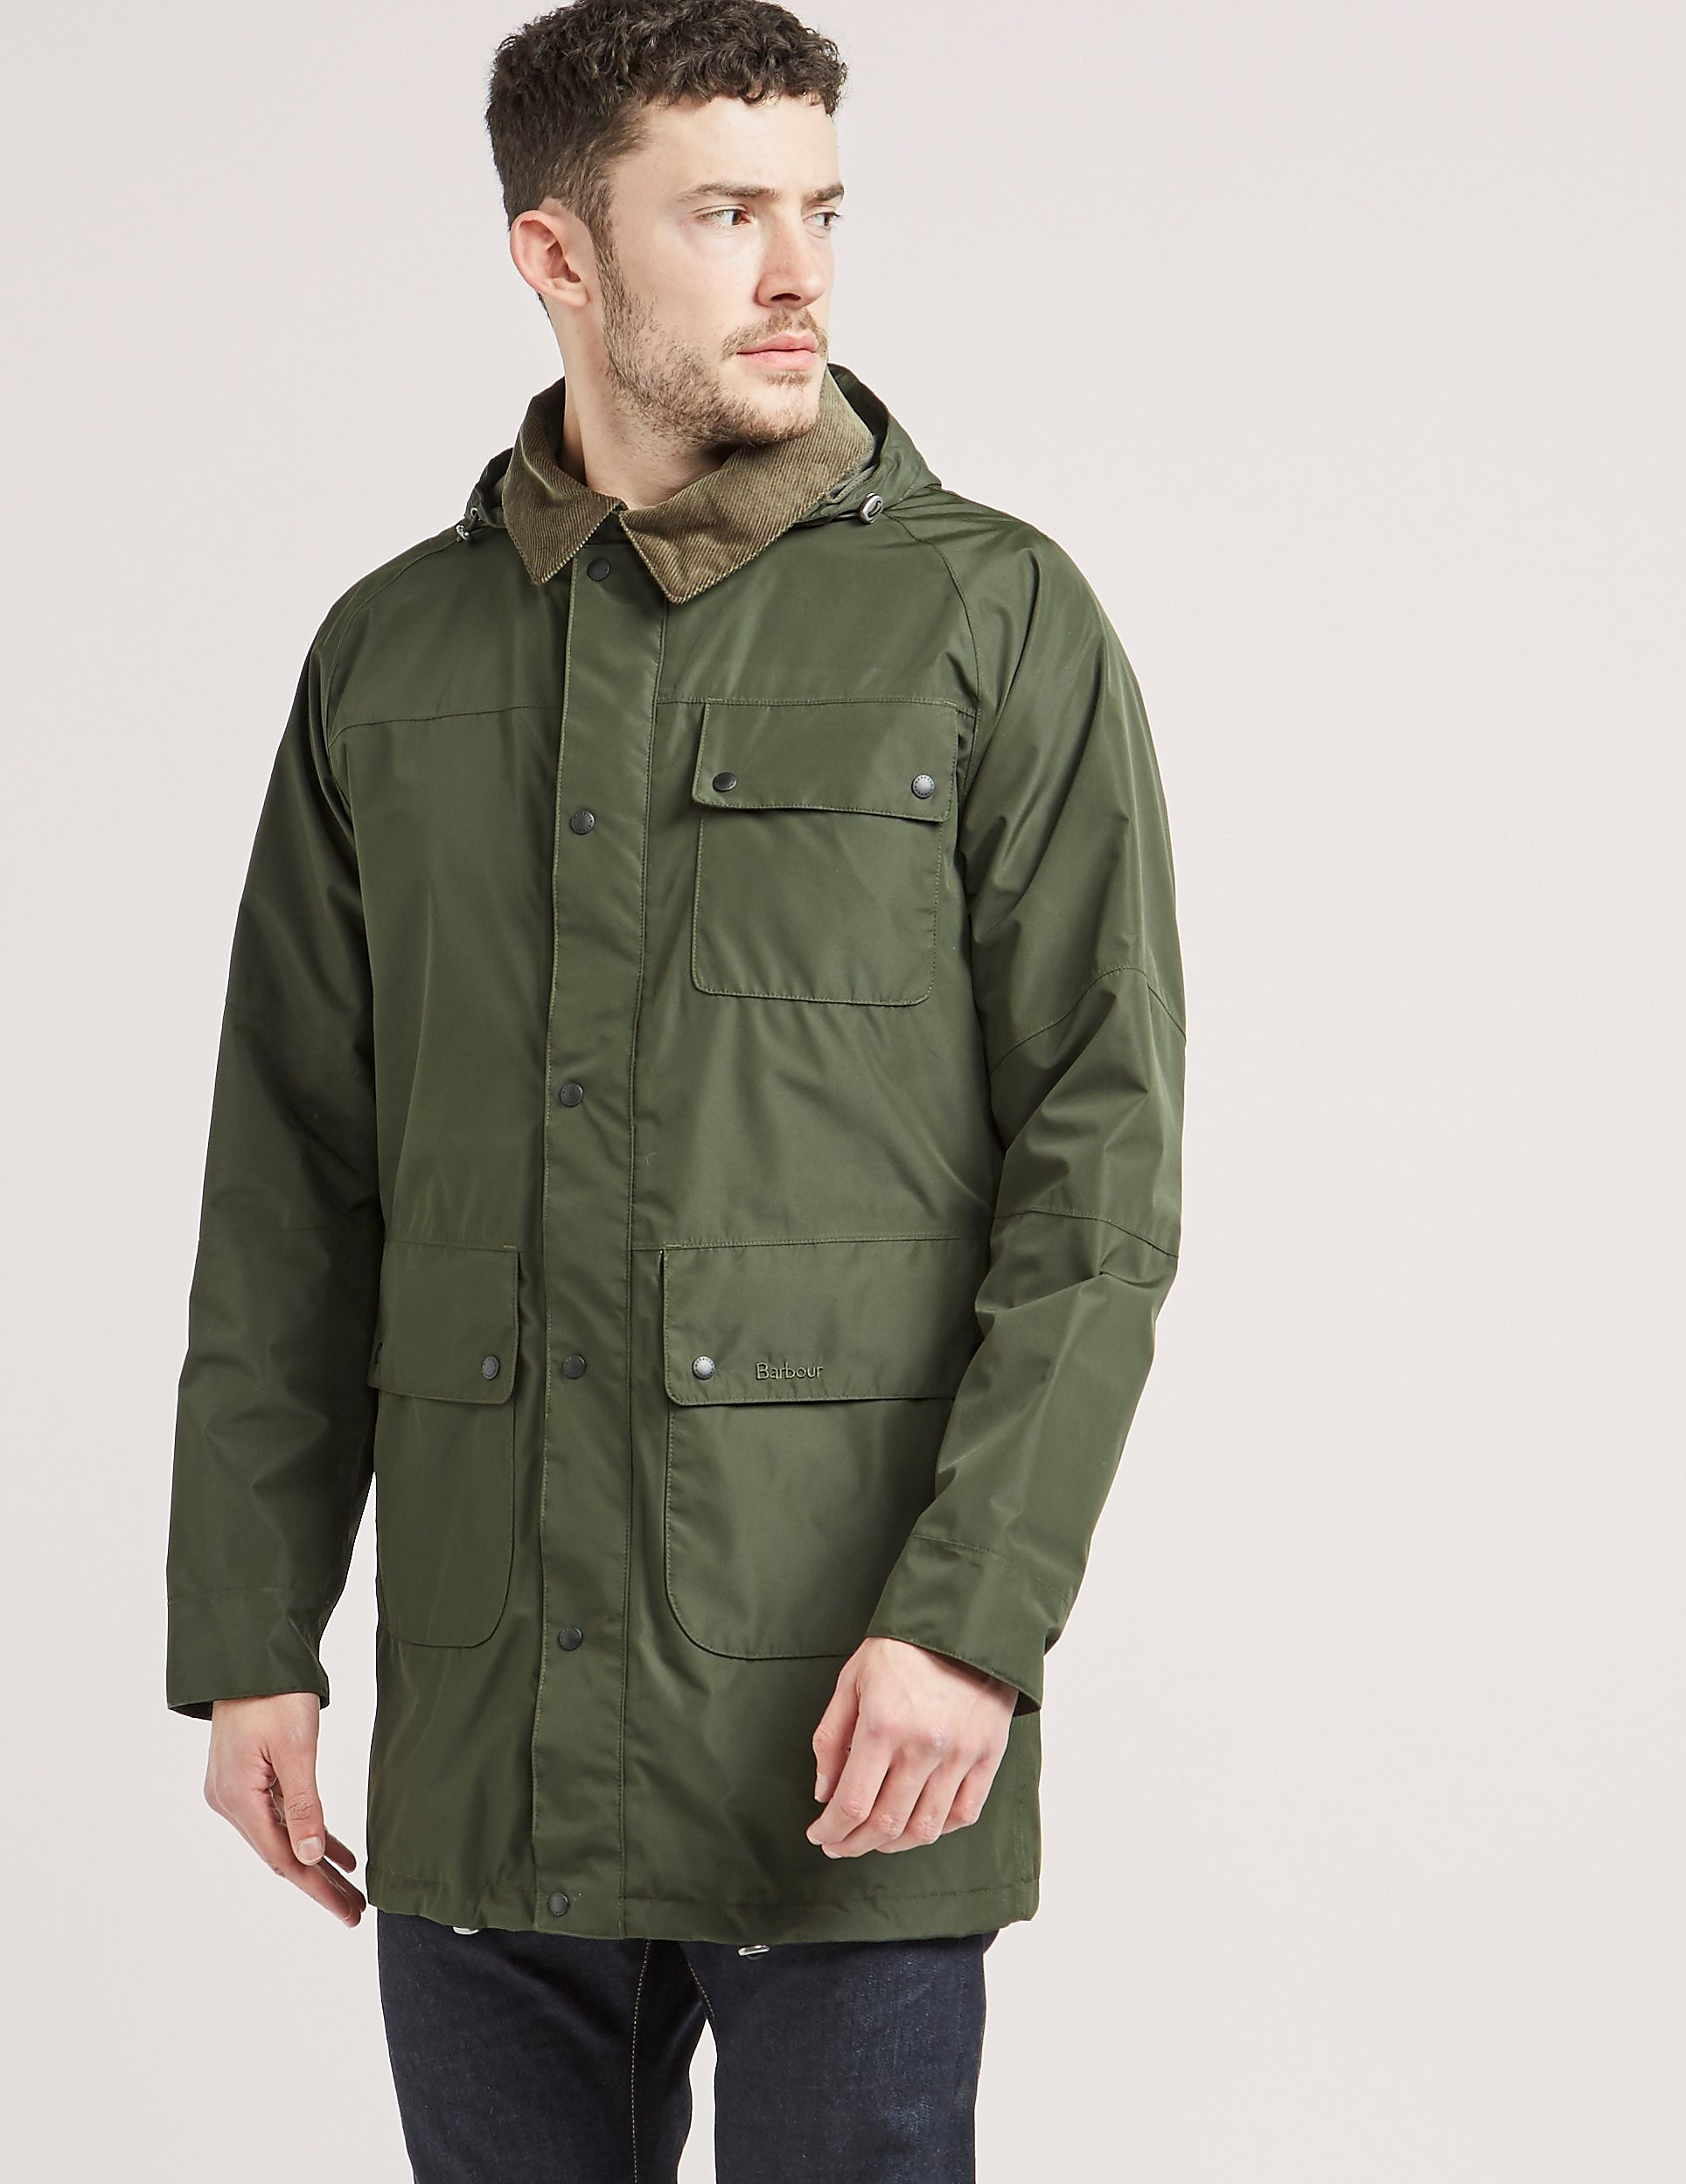 Barbour Strat Jacket